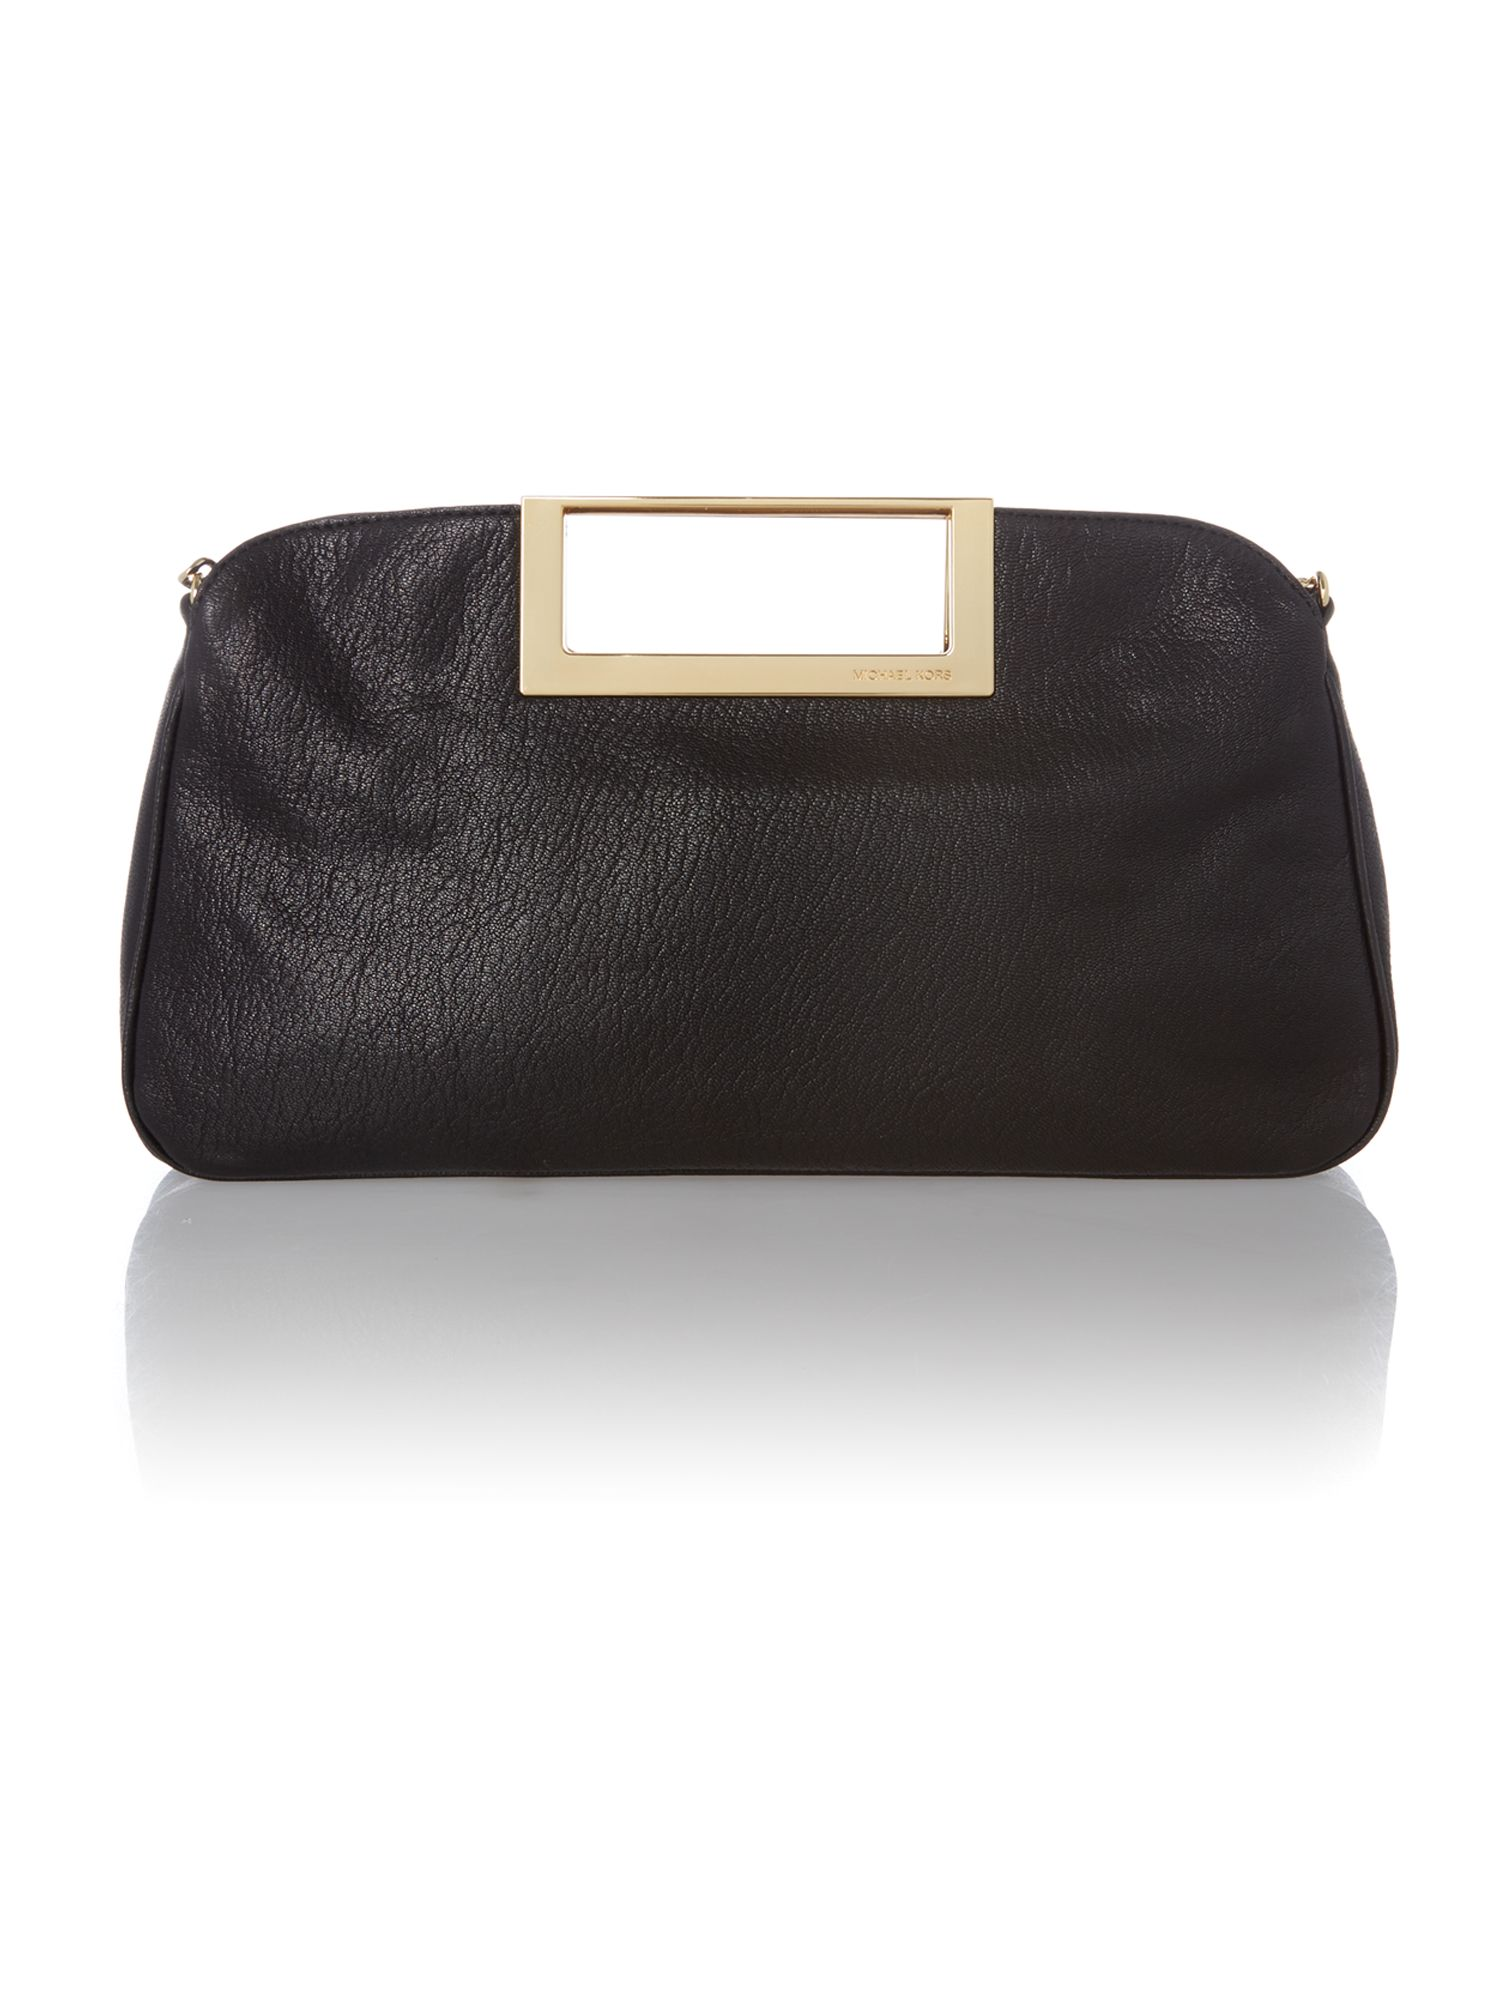 Berkley black clutch bag